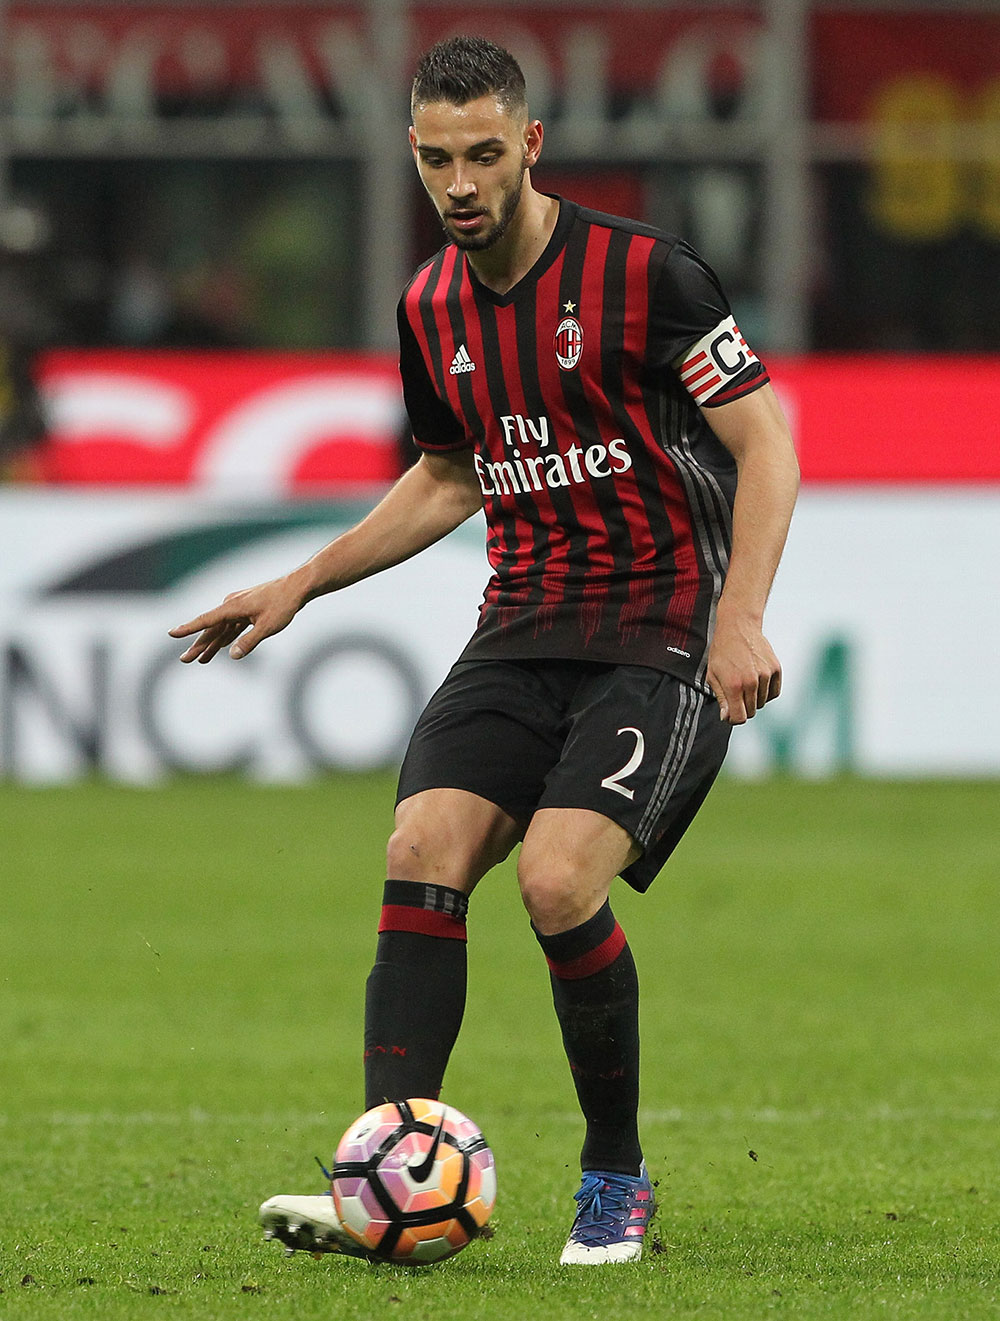 De Sciglio during Milan-Genoa at Stadio San Siro on the 18th of March 2017. (Photo by Marco Luzzani/Getty Images)